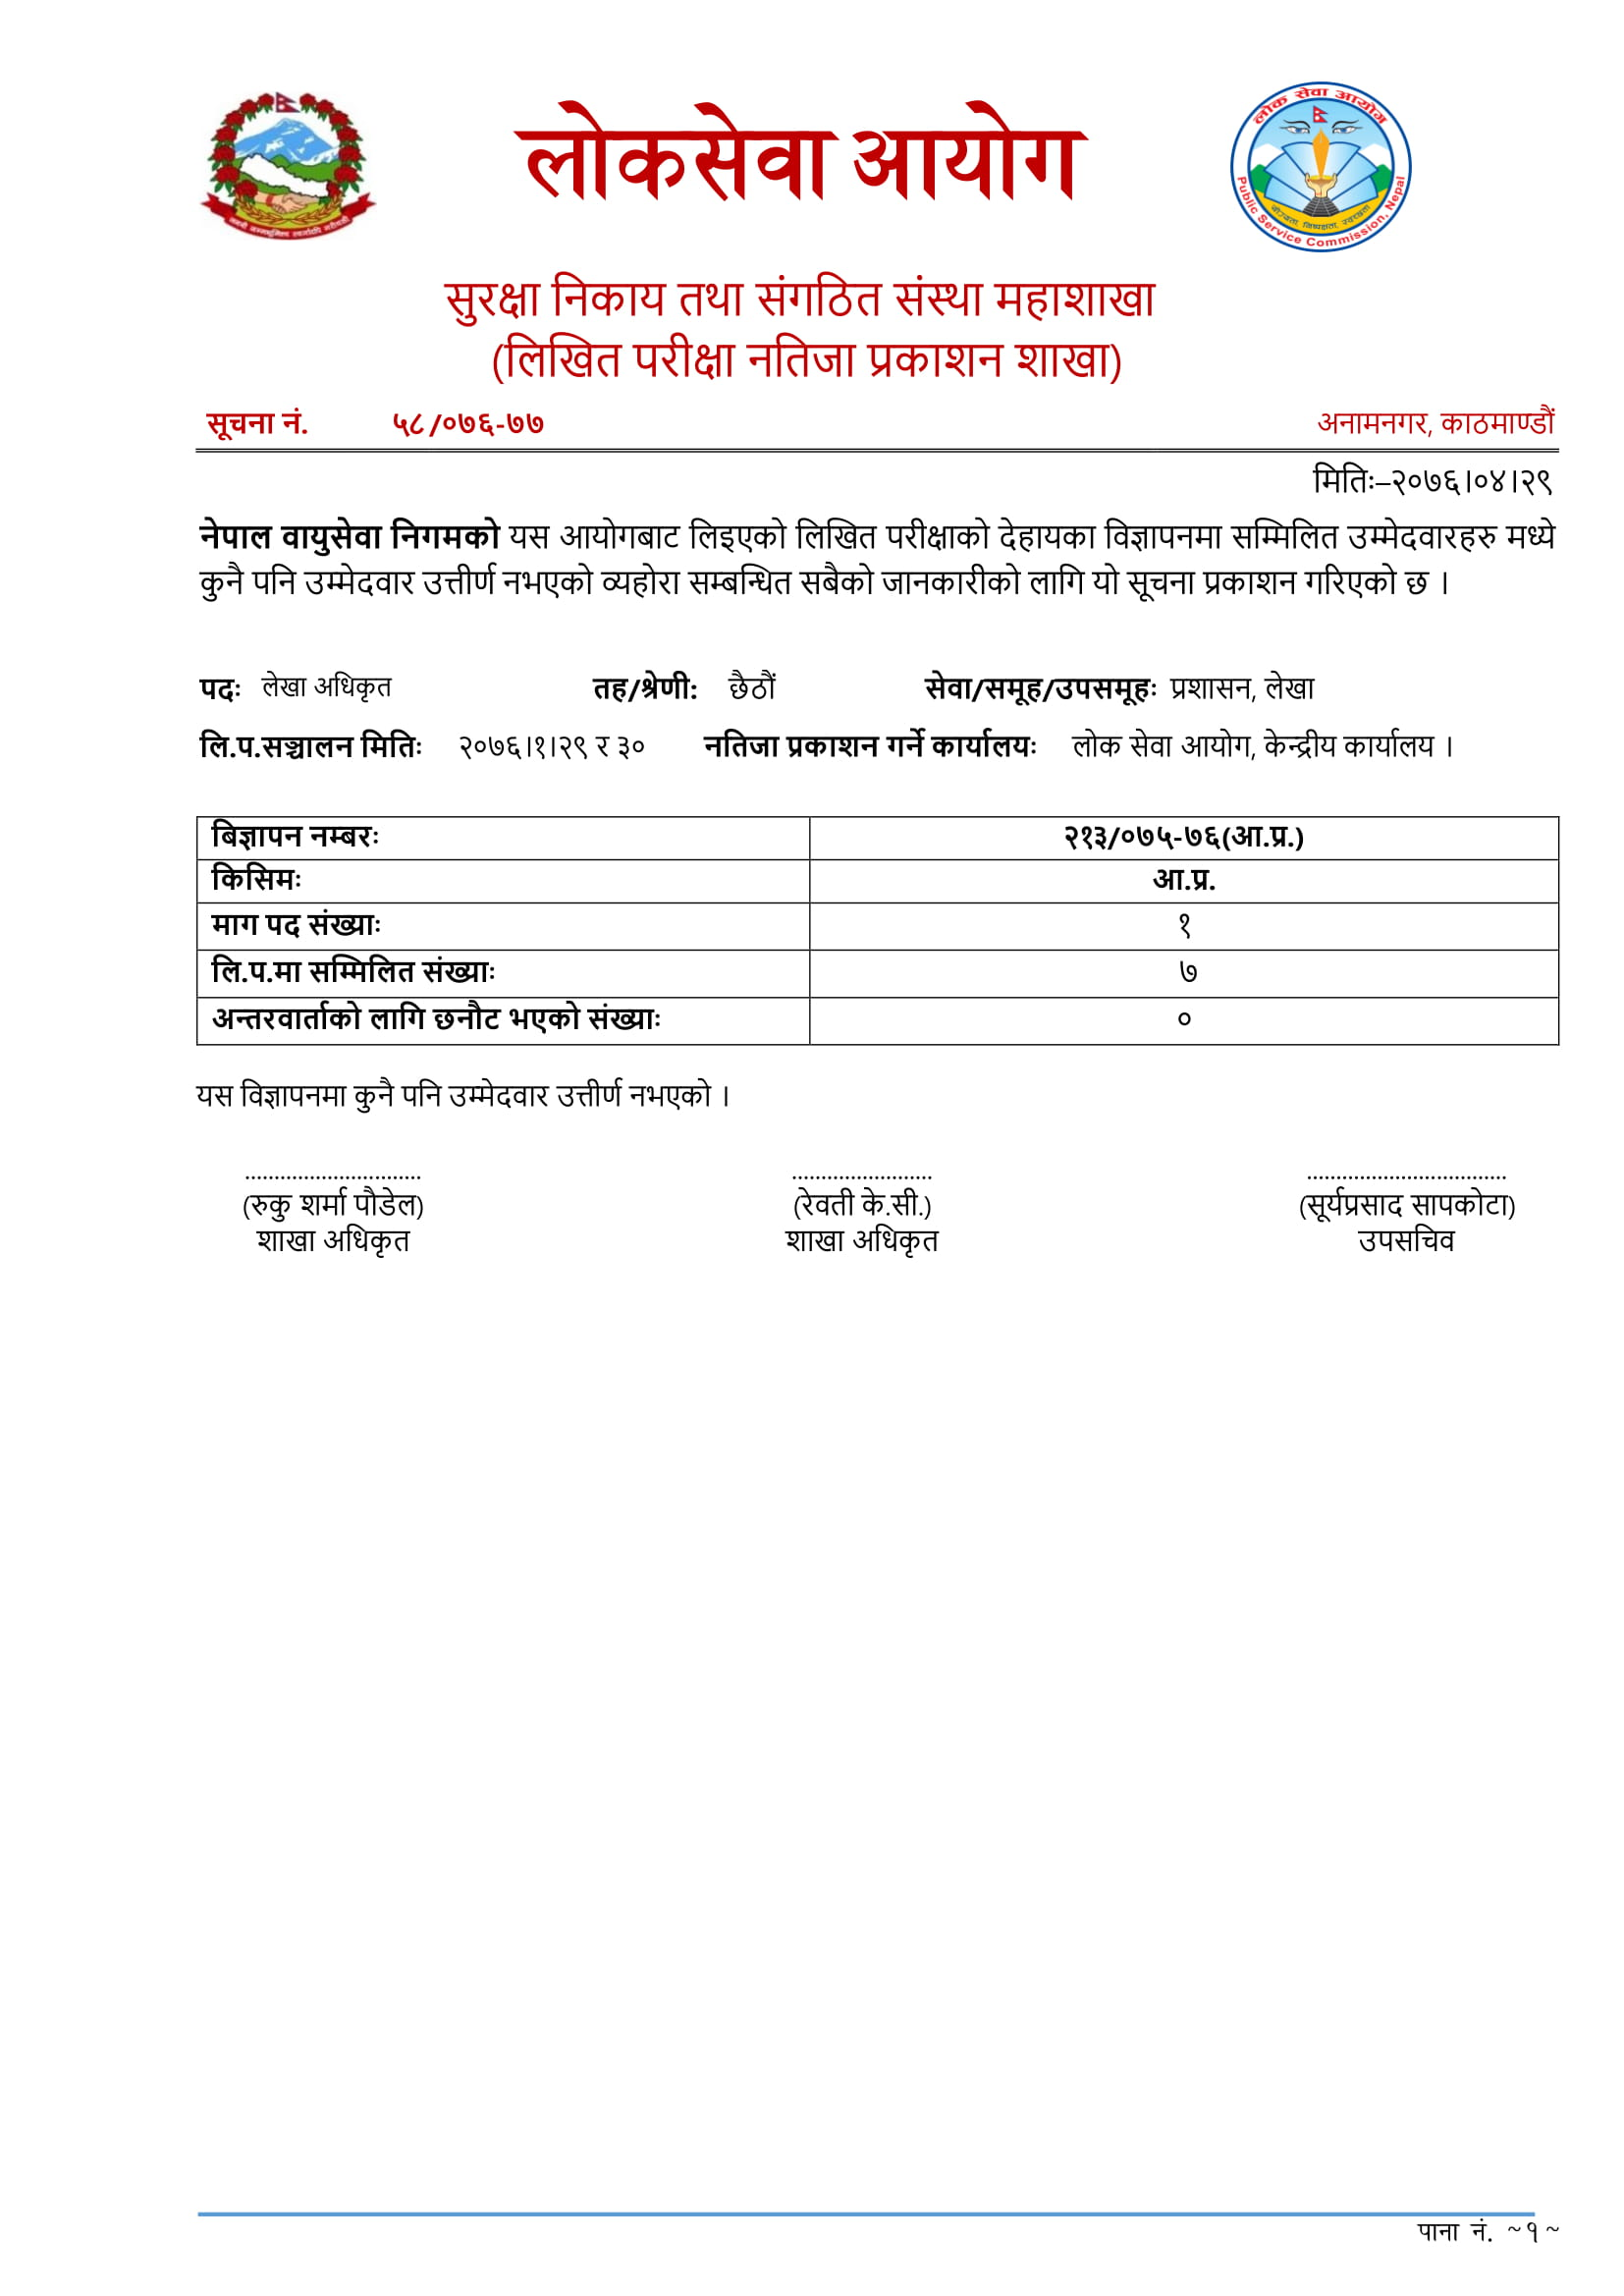 Nepal Airlines Exam Result,  Nepal Airlines Exam Result 2076,  Nepal Airlines Result,  Nepal Airlines Result 2076,  Nepal Airlines Result,  Nepal Airlines Corporation,  Nepal Airlines Corporation result,  Nepal Airlines Corporation result 2076,